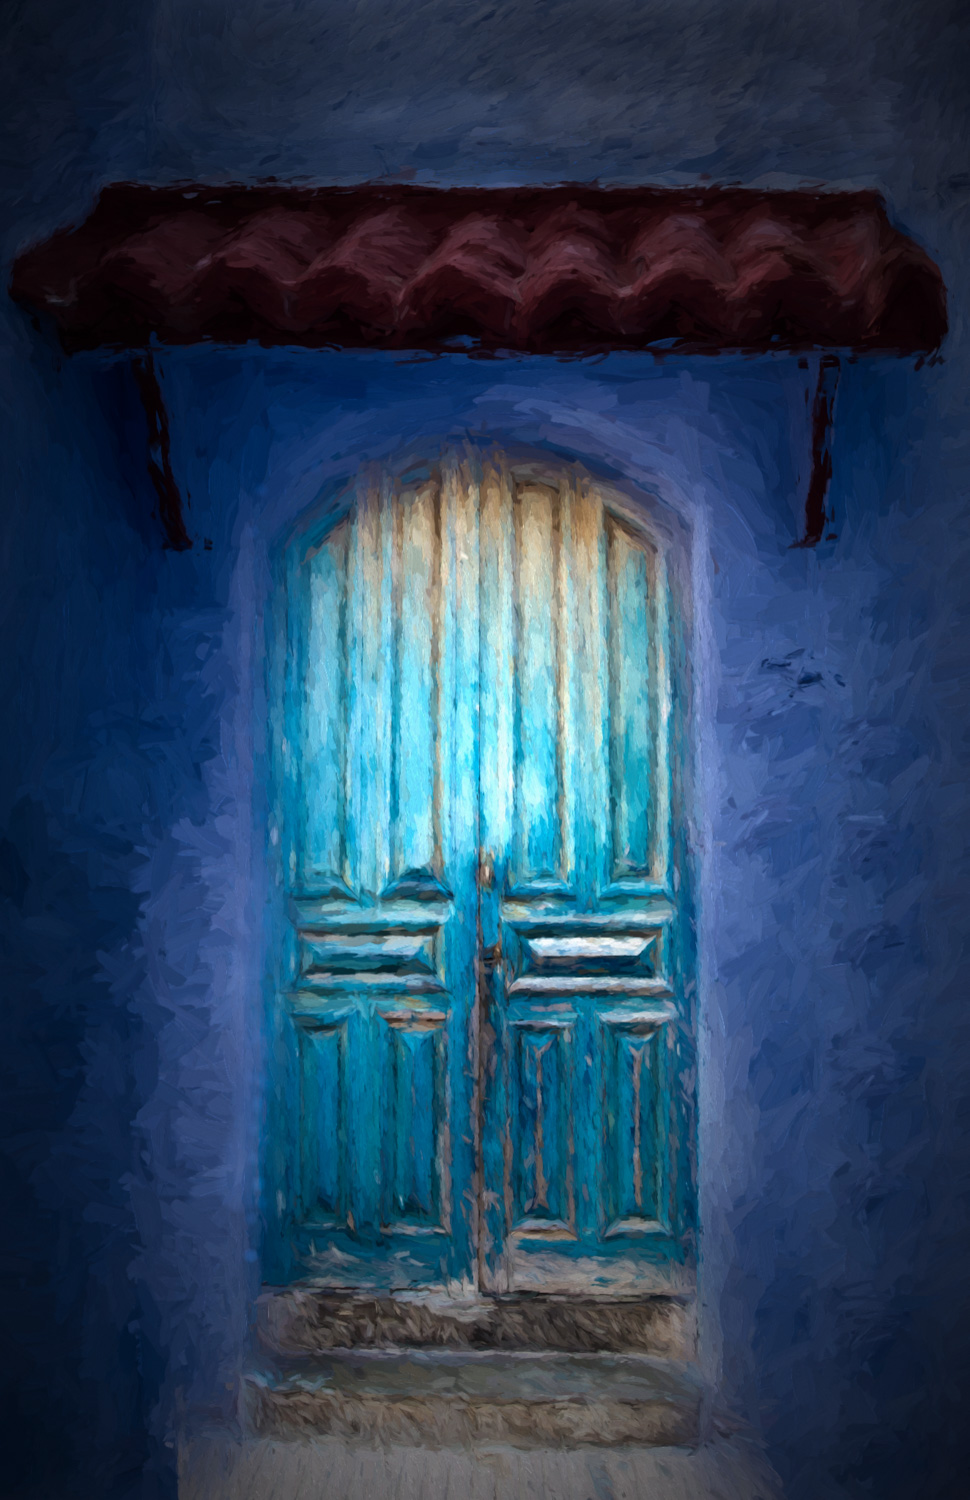 A door at night